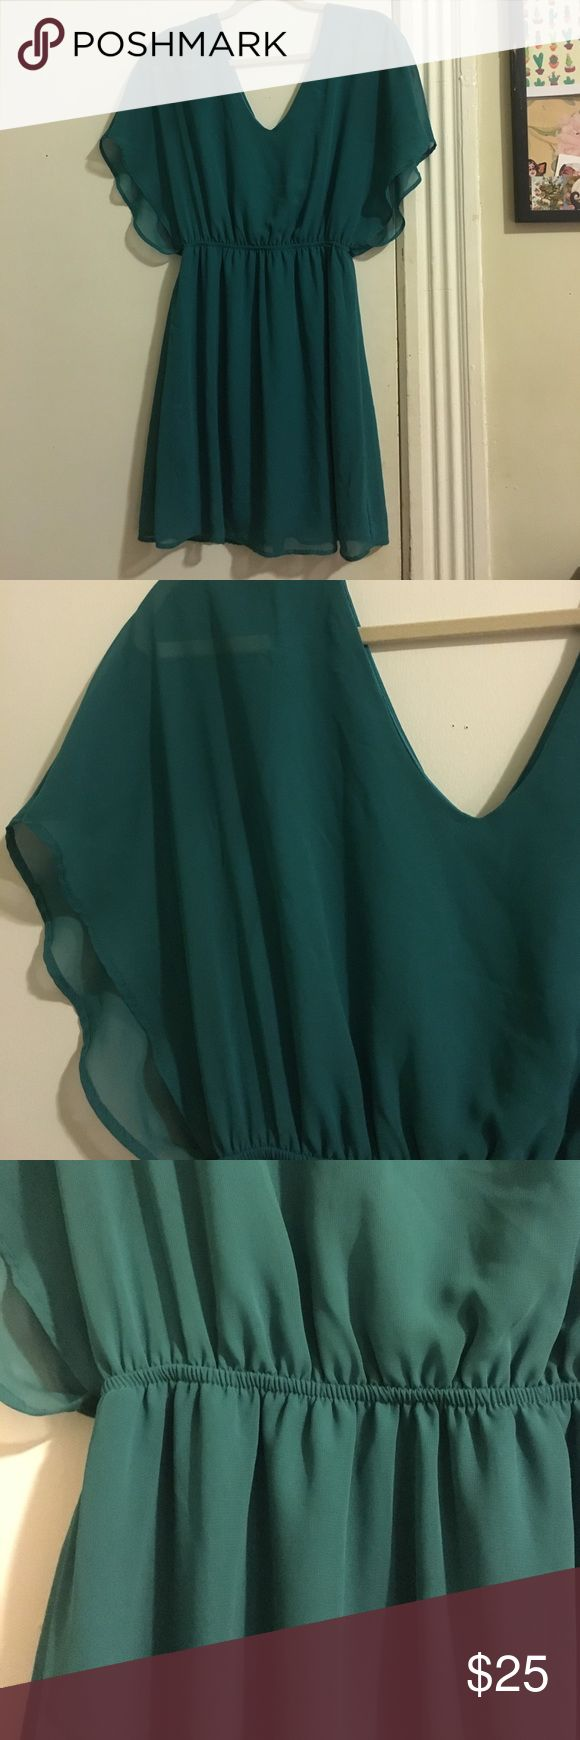 Francesca's Flowy Double V Neck Dress I have had such lovely evenings in this dress. Perfect for dinner dates and auditions or interviews. Teal color, very loose and flowy, a very pretty darker blueish teal color. Size medium. An inch or two above the knee for me, 5 ft 4. Francesca's Collections Dresses Midi